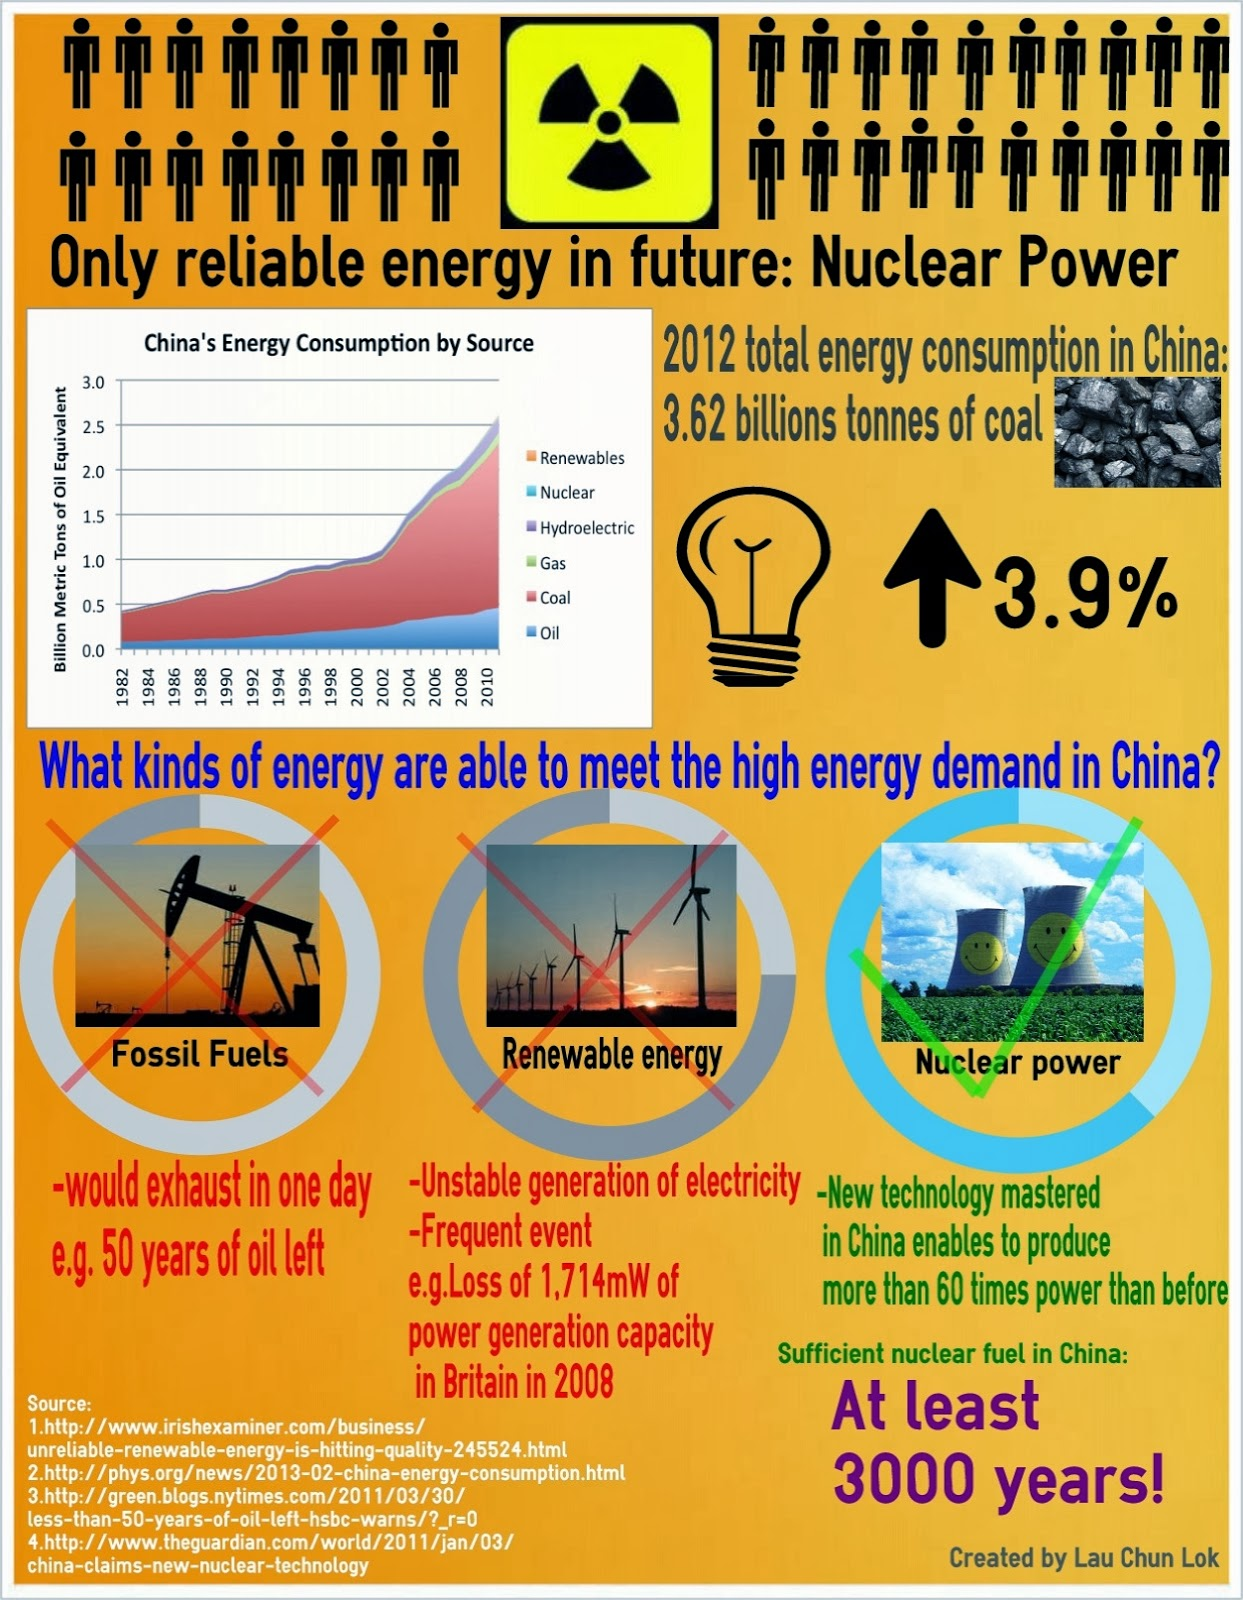 welcome to ben s life infographic share one of the points in my infographic share one of the points in my argumentative essay should keep on using nuclear power in the future